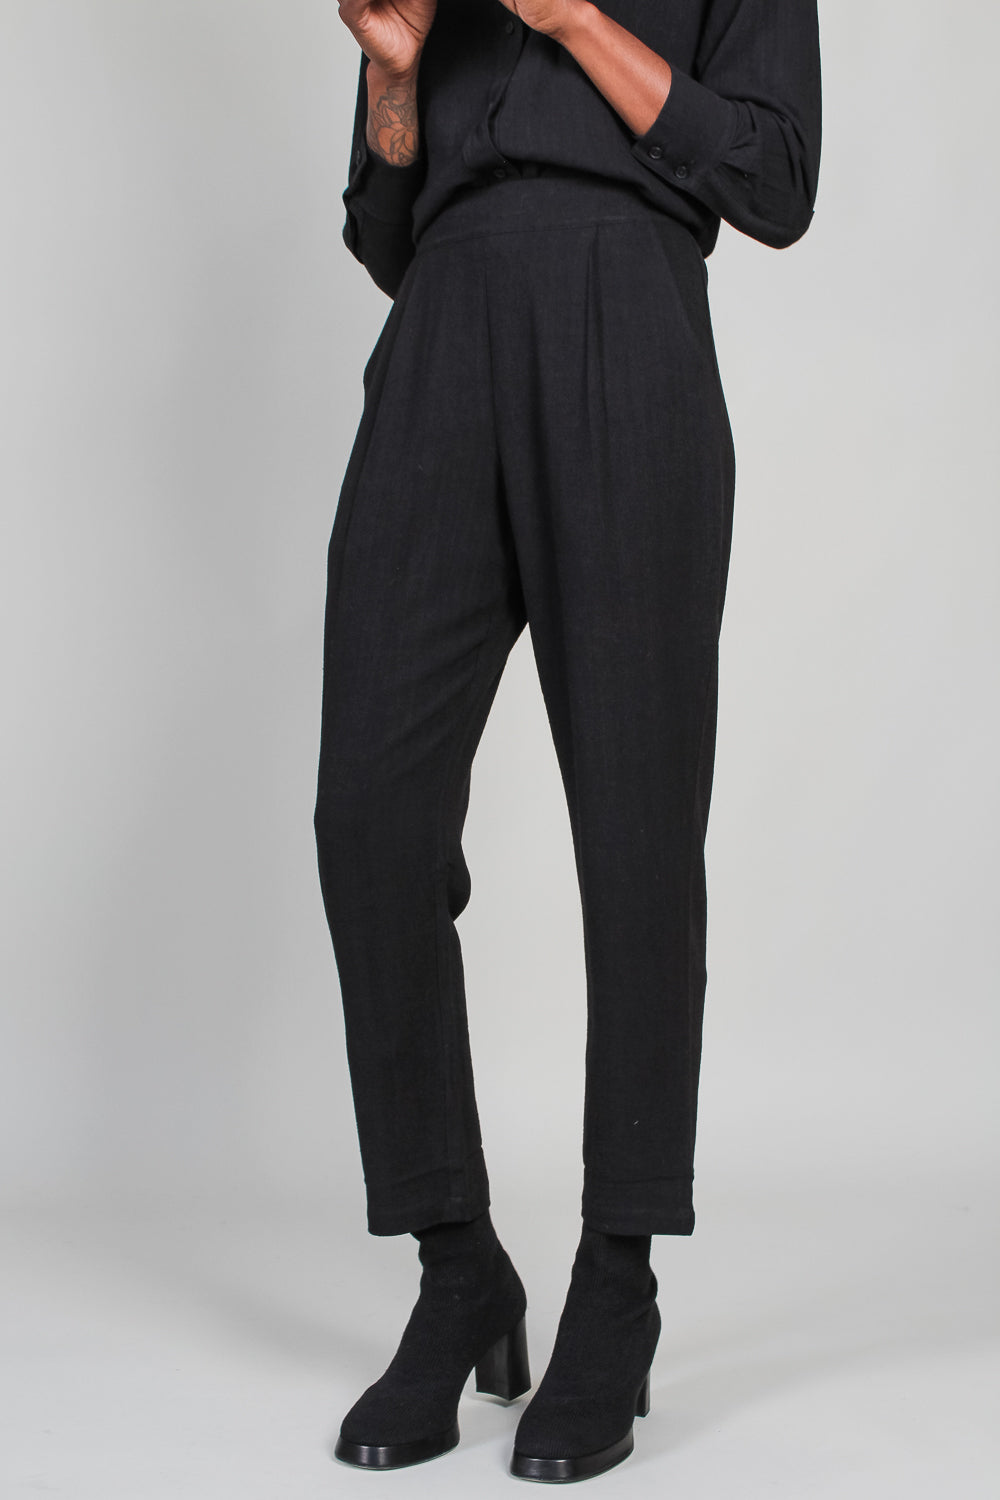 Signature Relaxed Tapering Trouser in Black